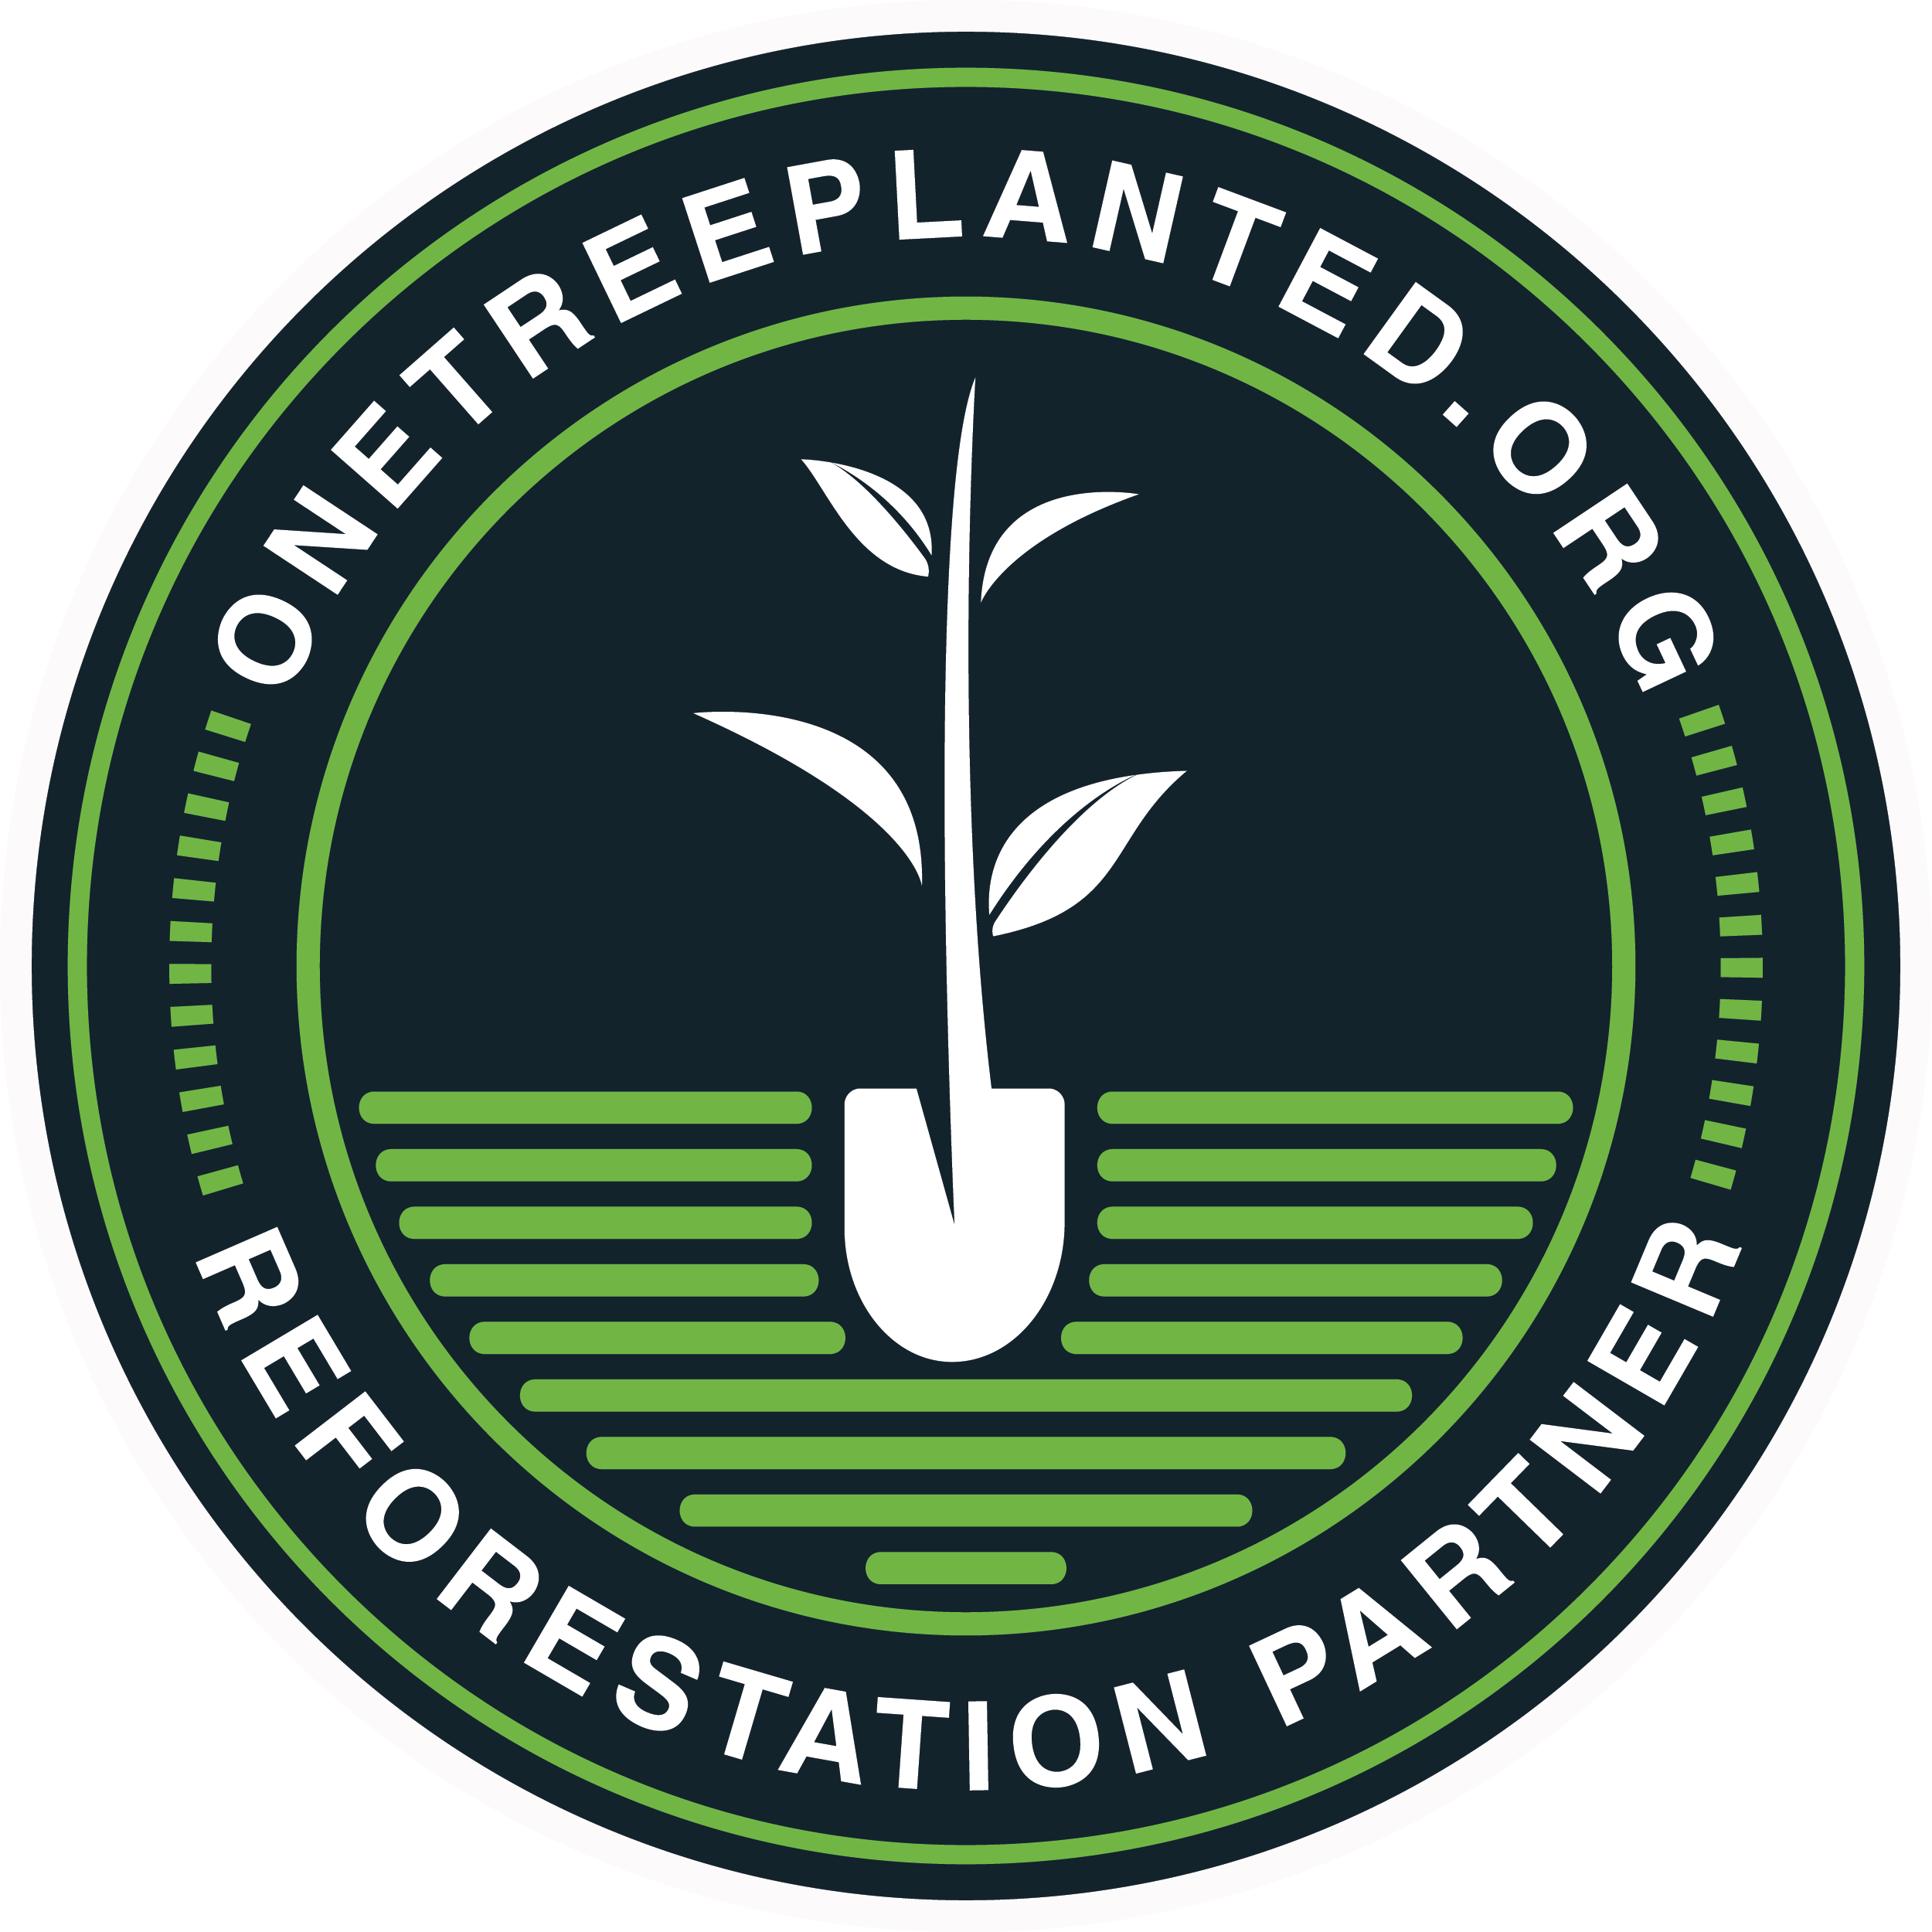 """- ONE SIMPLE ACT: WE PLANT TREESAt Casa PRANA caring for our Earth while we live out our passions in all realms of beauty, body and mind is our main priority. We are proud to be partners with """"OneTreePlanted.org.""""Every month by booking our """"Spot Light Service"""" or by purchasing one of our """"Spot Light Product"""" you are planting a tree. Follow us on Instagram or Facebook to stay in the loop and find out whether your next tree being planted in North America, Latin America, Asia or Africa. The future is now!"""